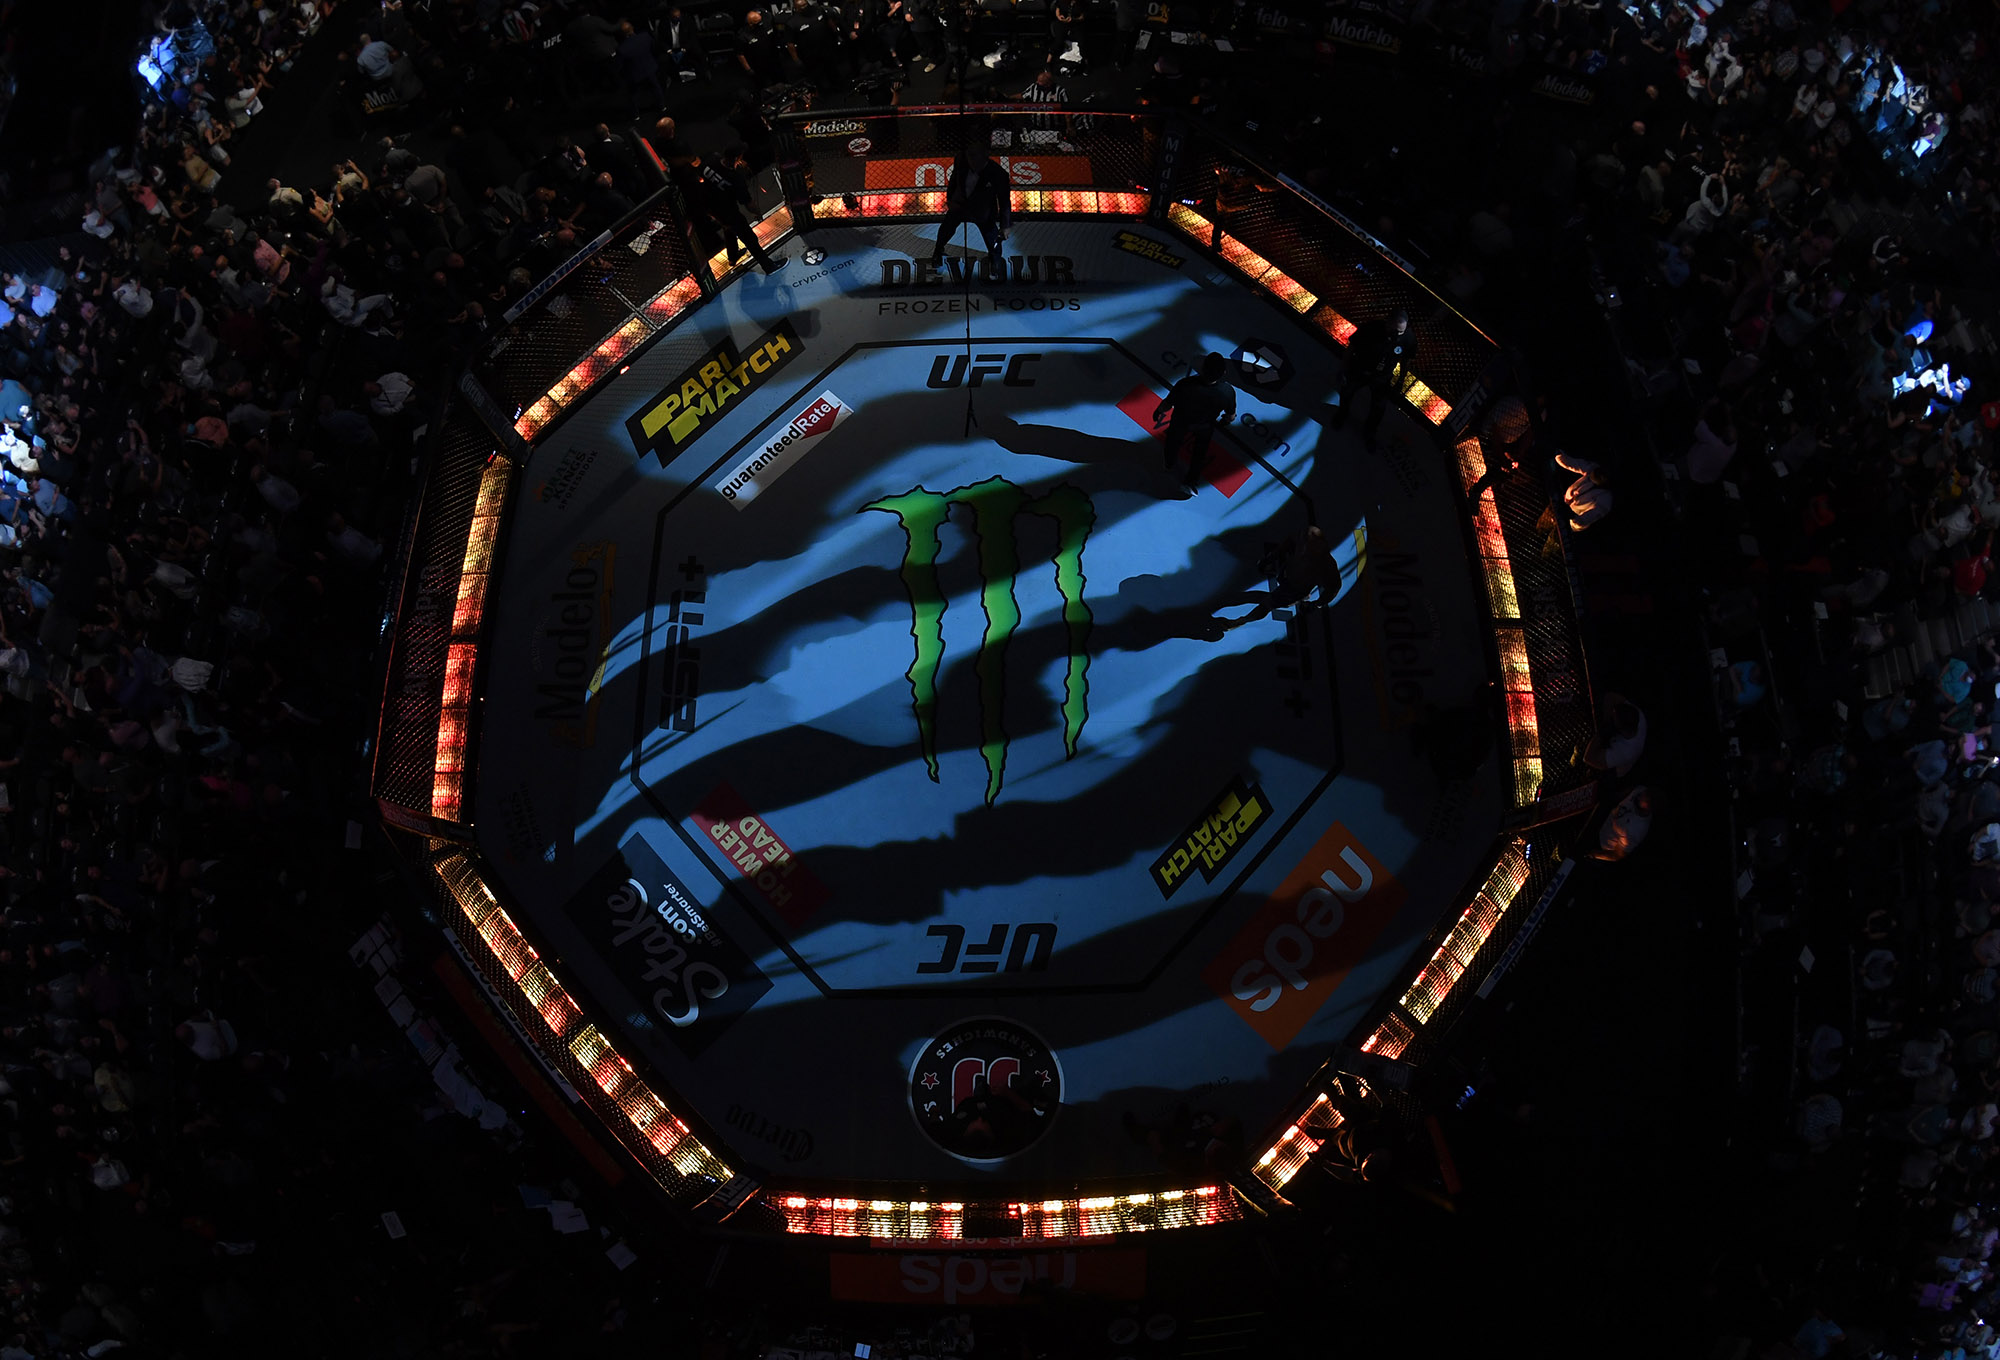 An overhead view of the Octagon during the UFC 266 event on September 25, 2021 in Las Vegas, Nevada. (Photo by Jeff Bottari/Zuffa LLC)